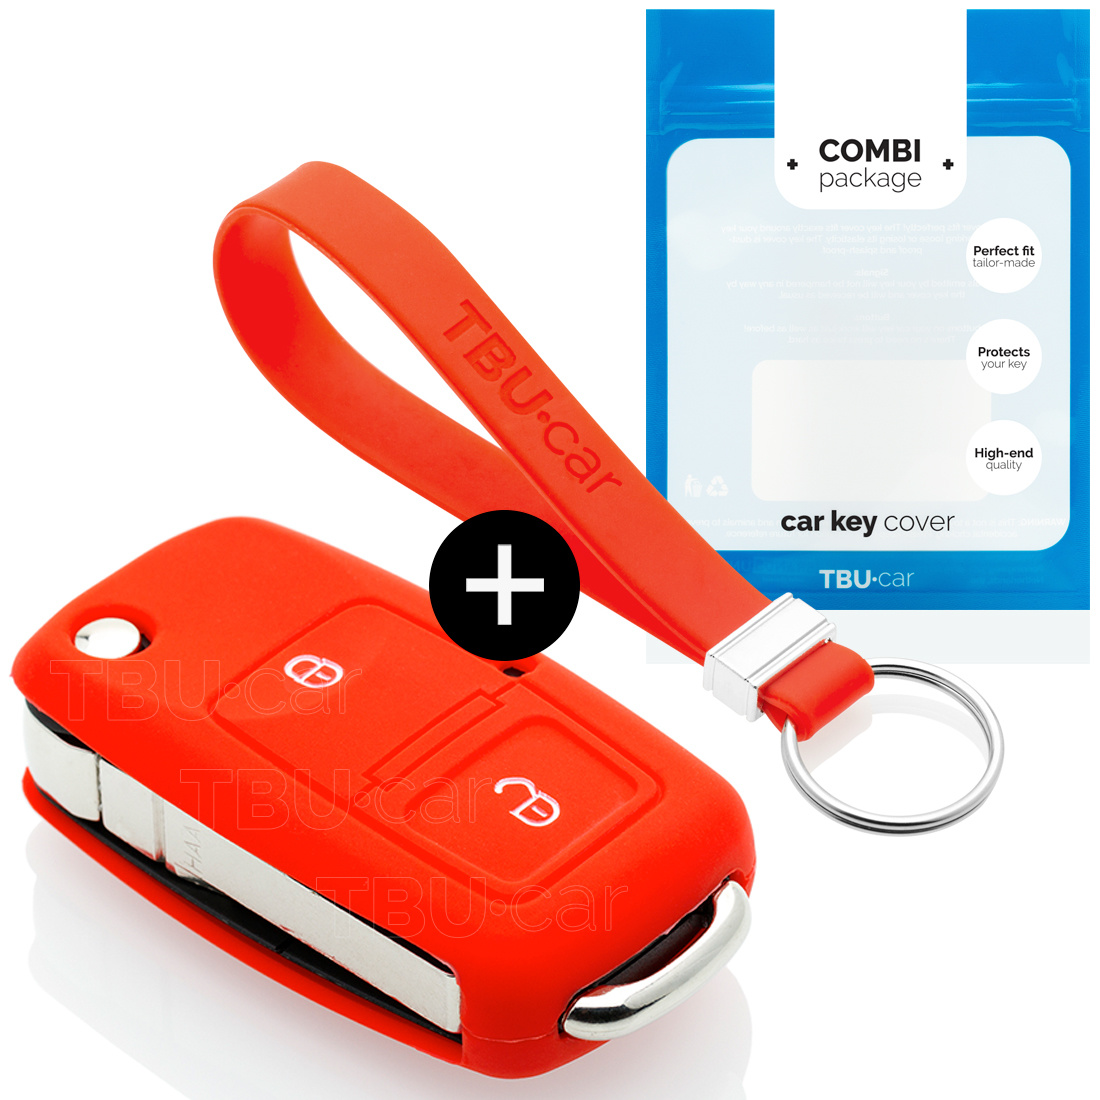 Audi Car key cover - Silicone Protective Remote Key Shell - FOB Case Cover - Red